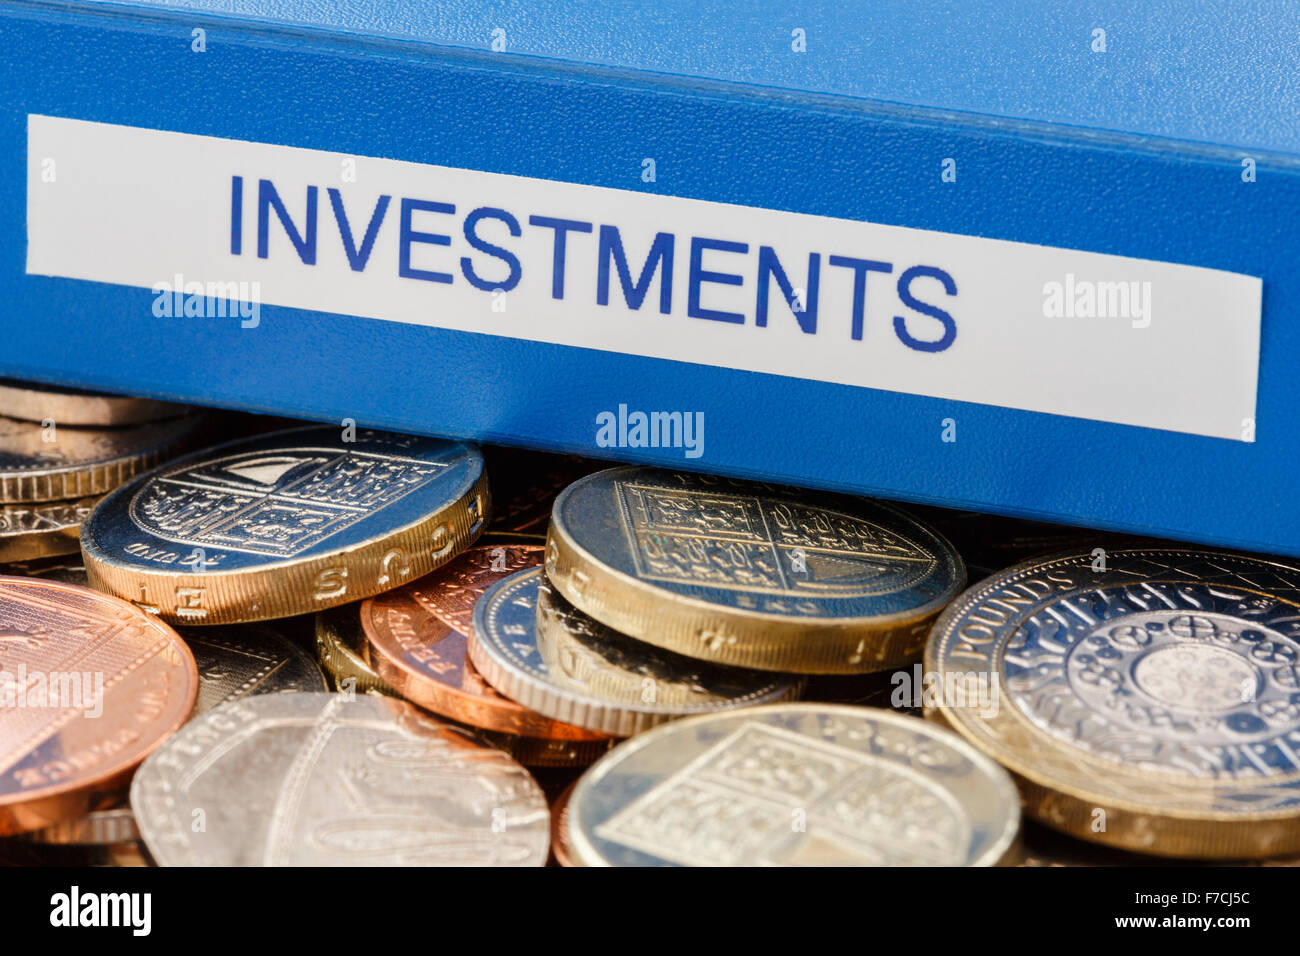 Investments folder on a pile of English sterling old £ pound coins to illustrate investing money in stocks - Stock Image